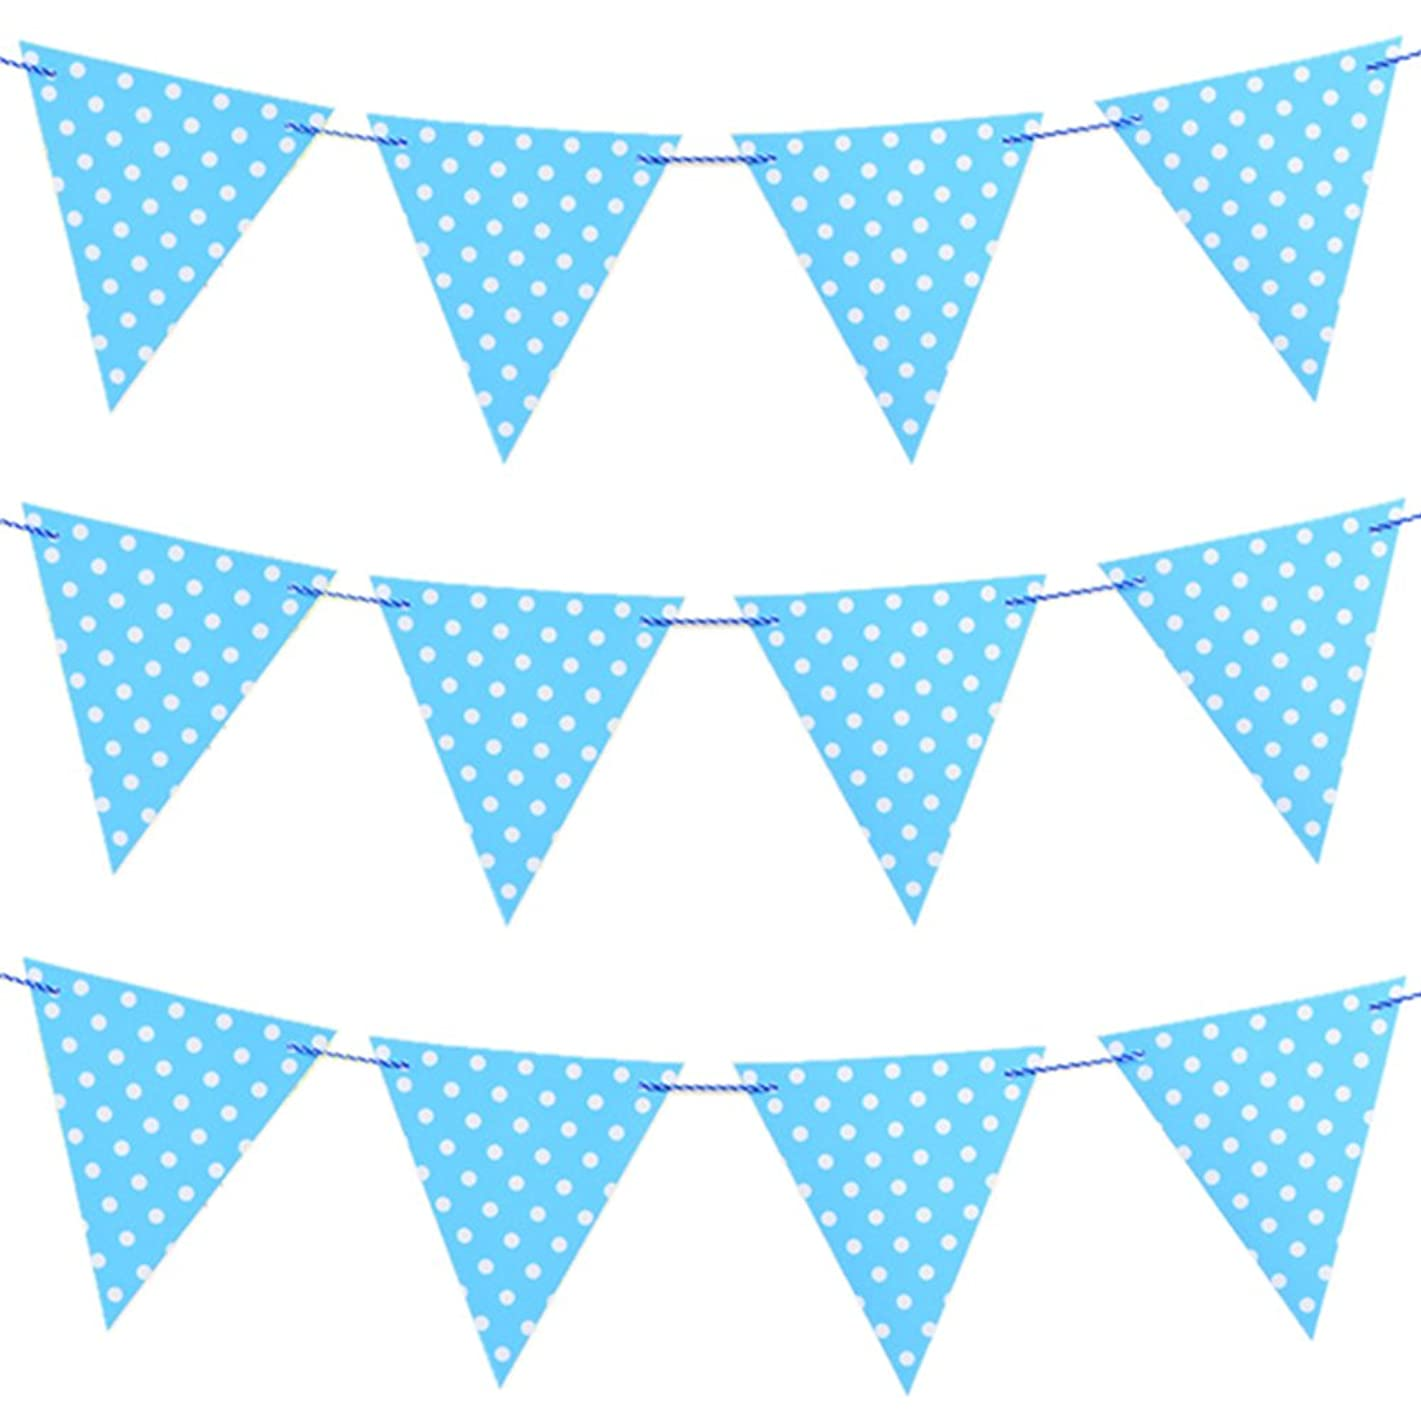 Joewyle Happy Birthday Party Supplies Banner for Baby Boys Birthday Party Decoration, Polka Dot Print Pennant Flag Banner Blue